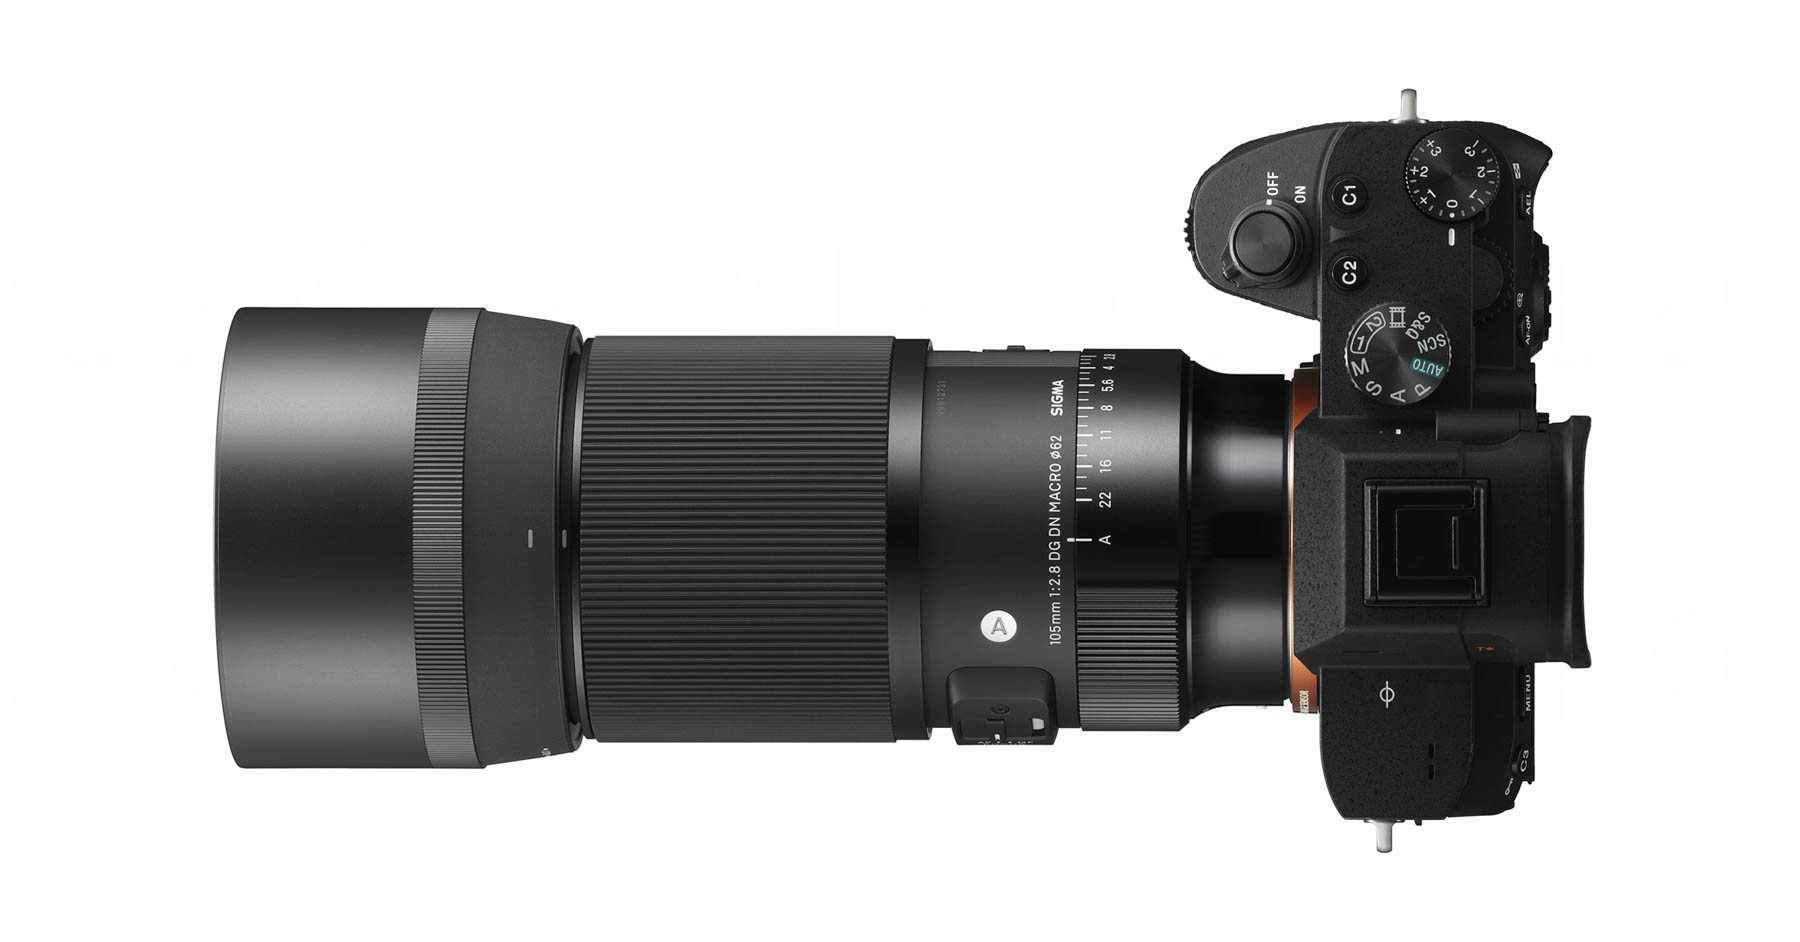 Sigma 105mm ƒ/2,8 Macro para mirrorless full frame (L-Mount y Sony E)